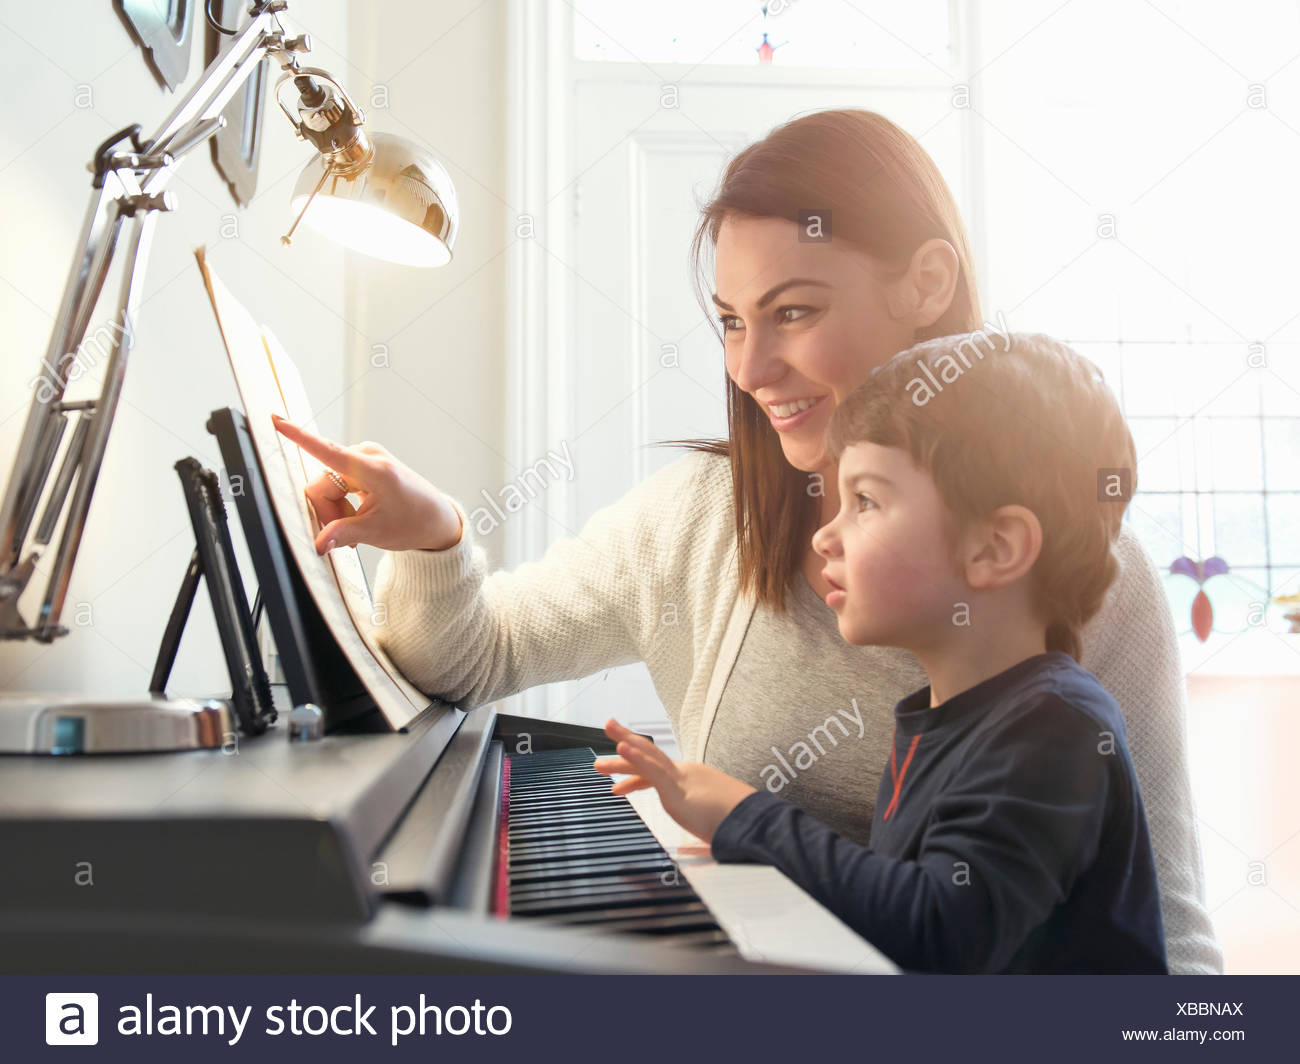 Mother pointing at sheet music to teach son to play piano at home - Stock Image